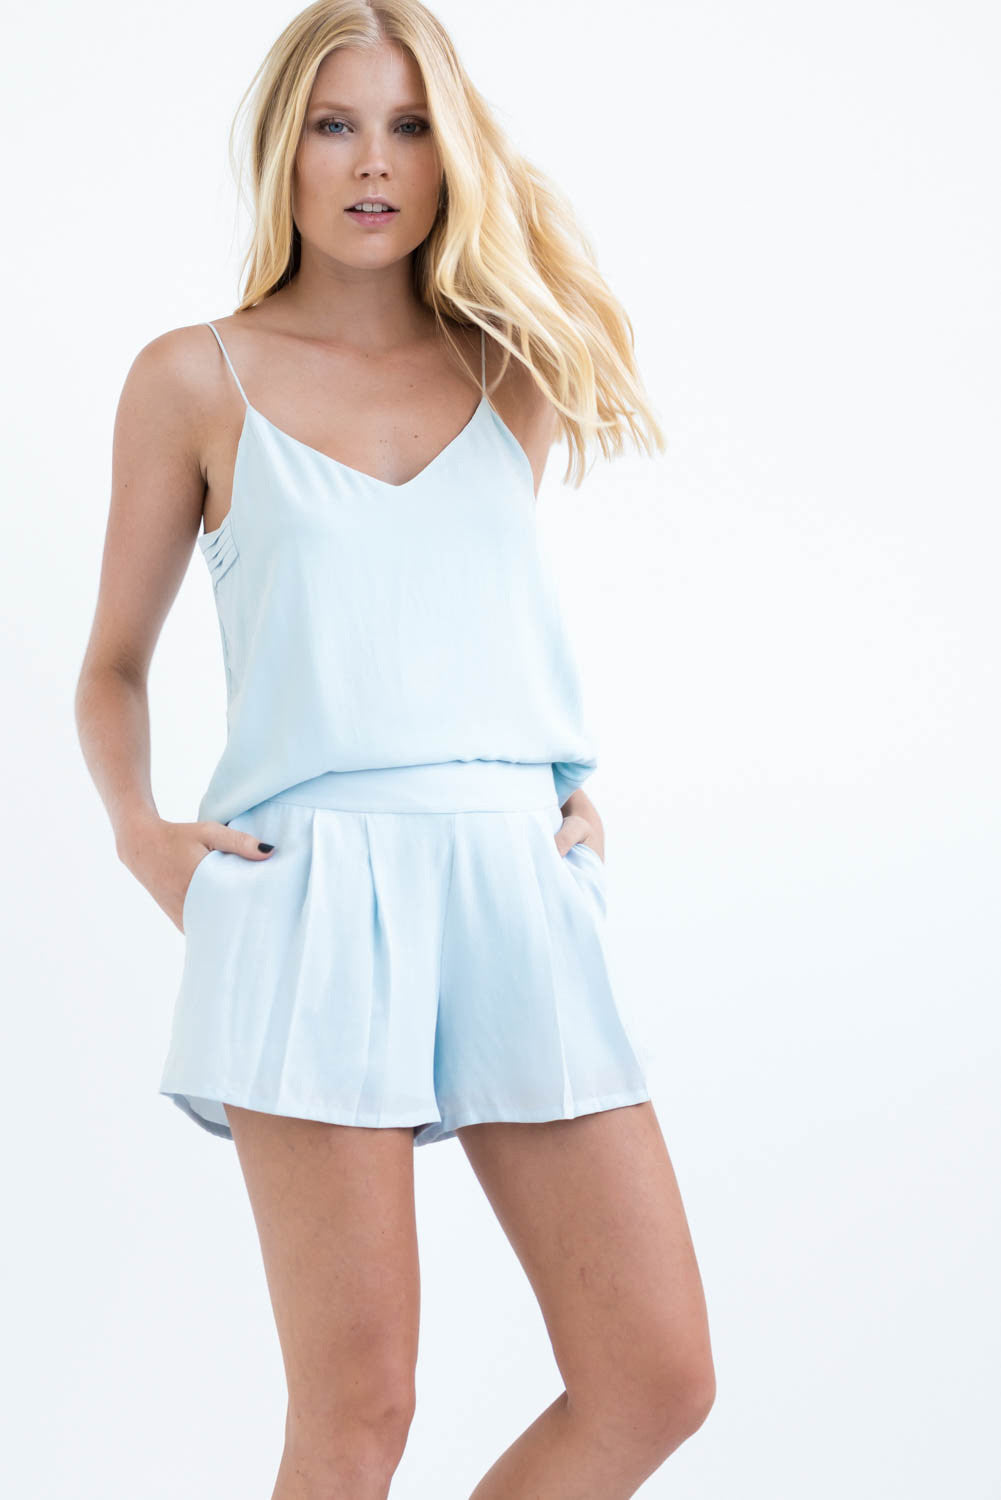 THE SLIP ON CAMISOLE - SKY BLUE